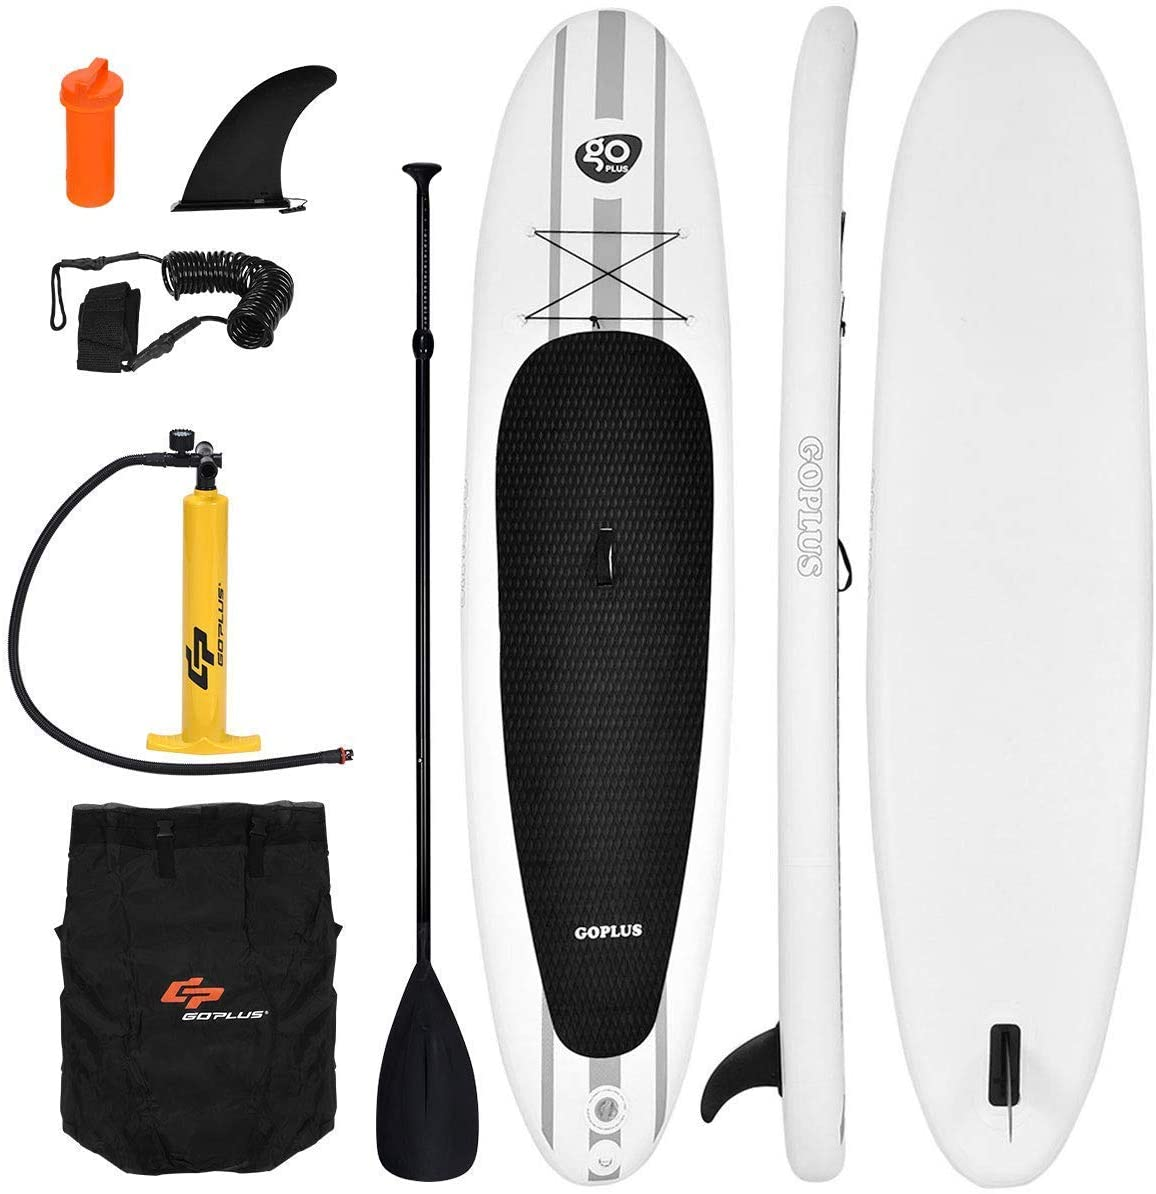 Goplus Inflatable Stand up Paddle Board Surfboard SUP Board